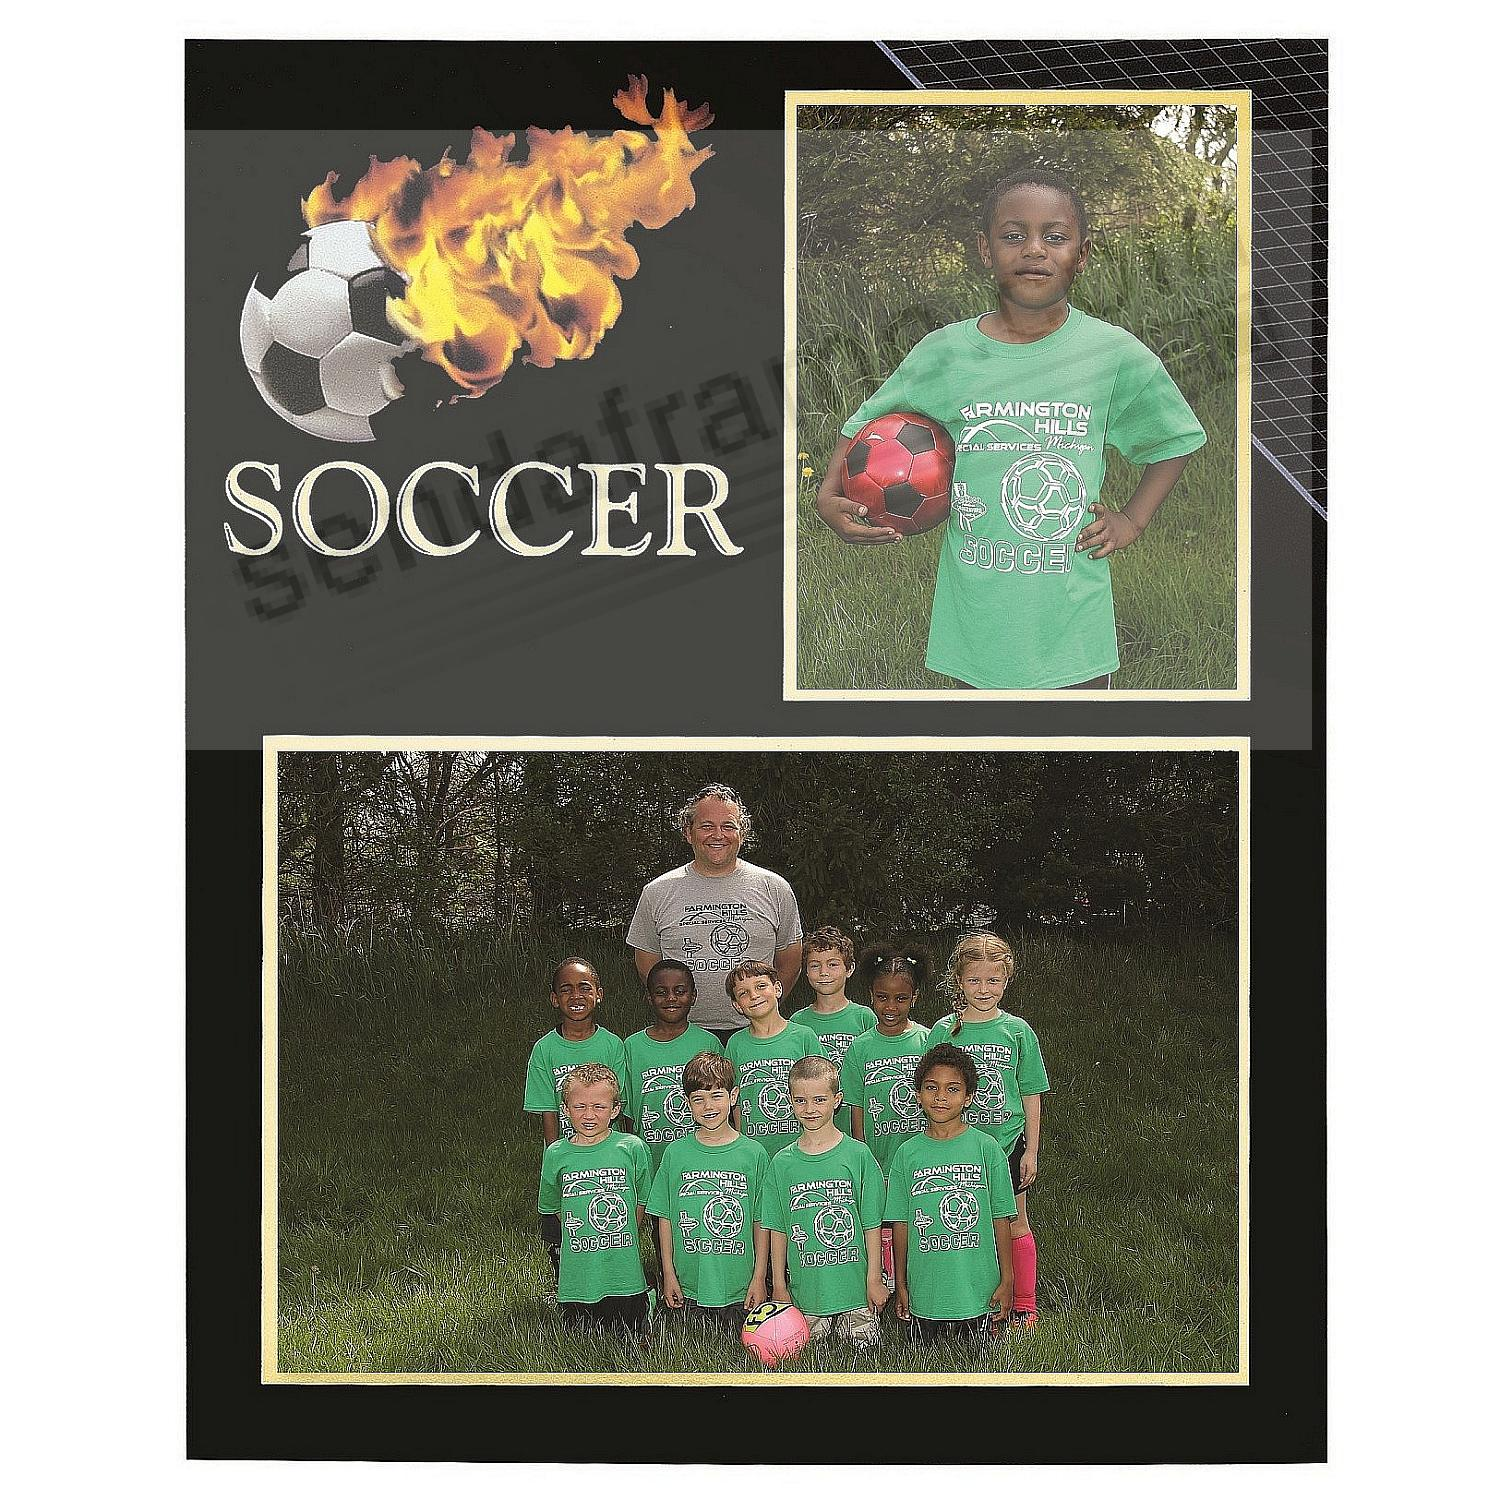 Soccer Player/Team 7x5/3½x5 MEMORY MATES cardstock double photo frame (sold in 10's)